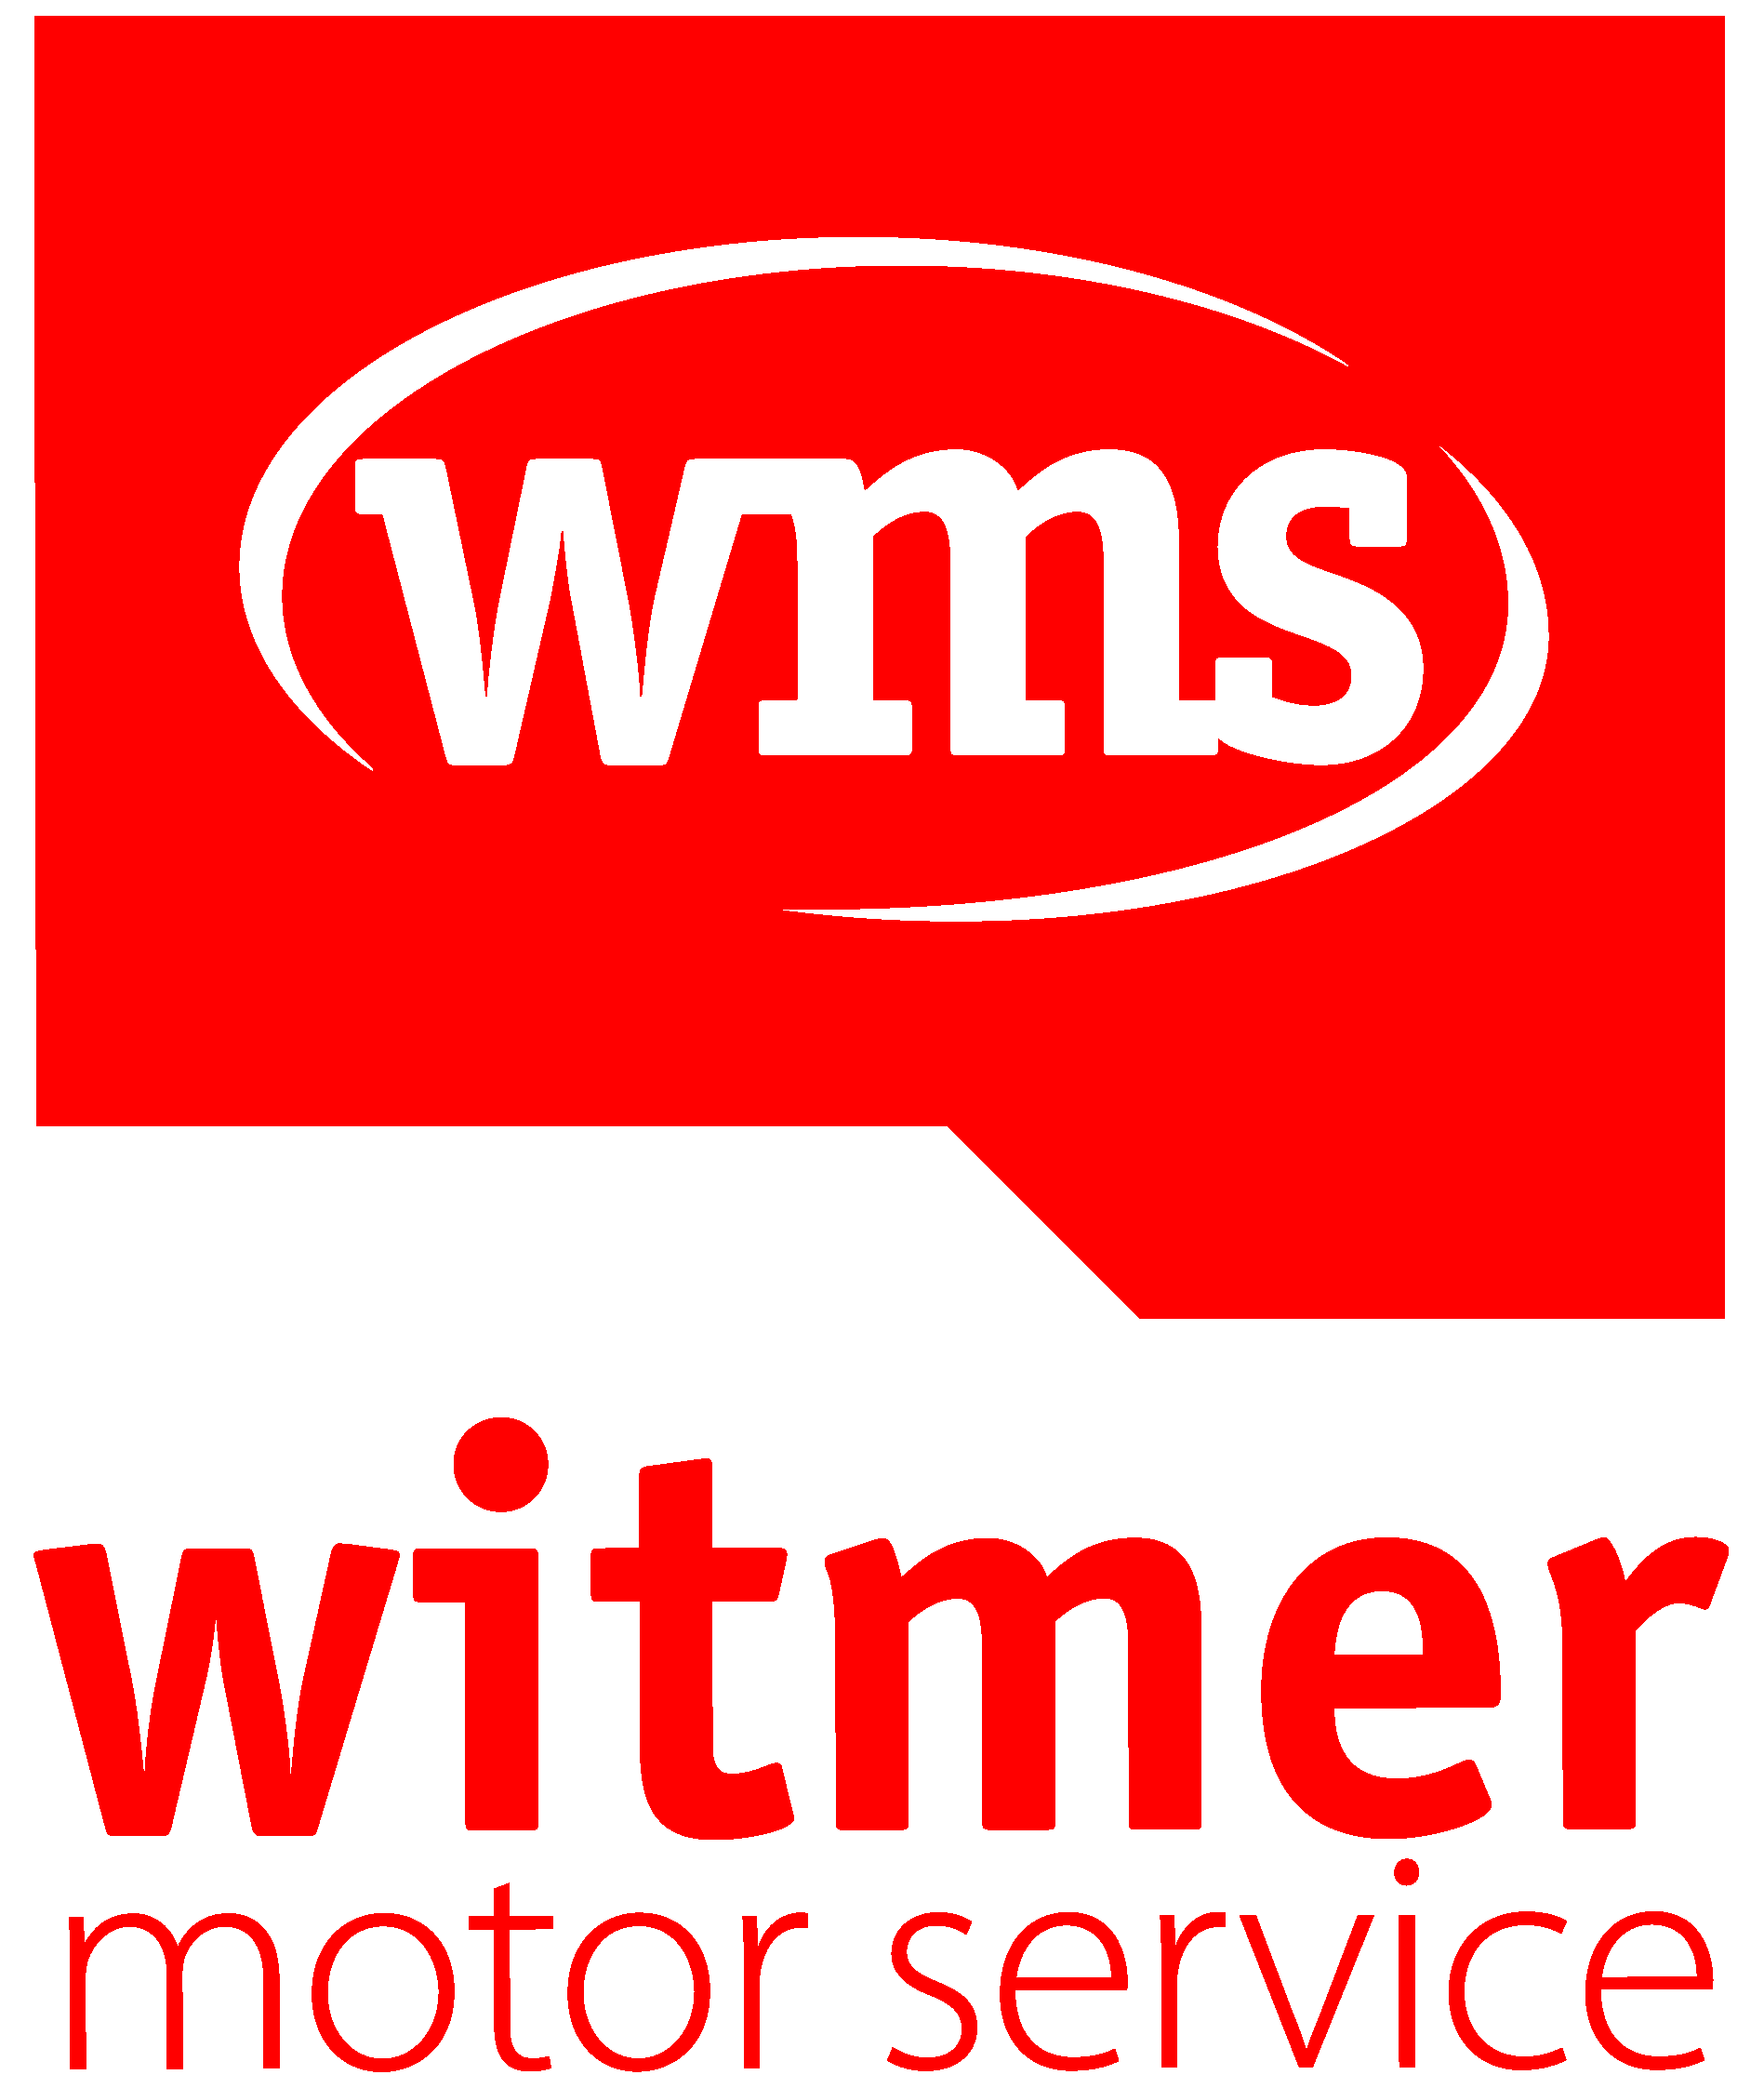 Witmer Motor service